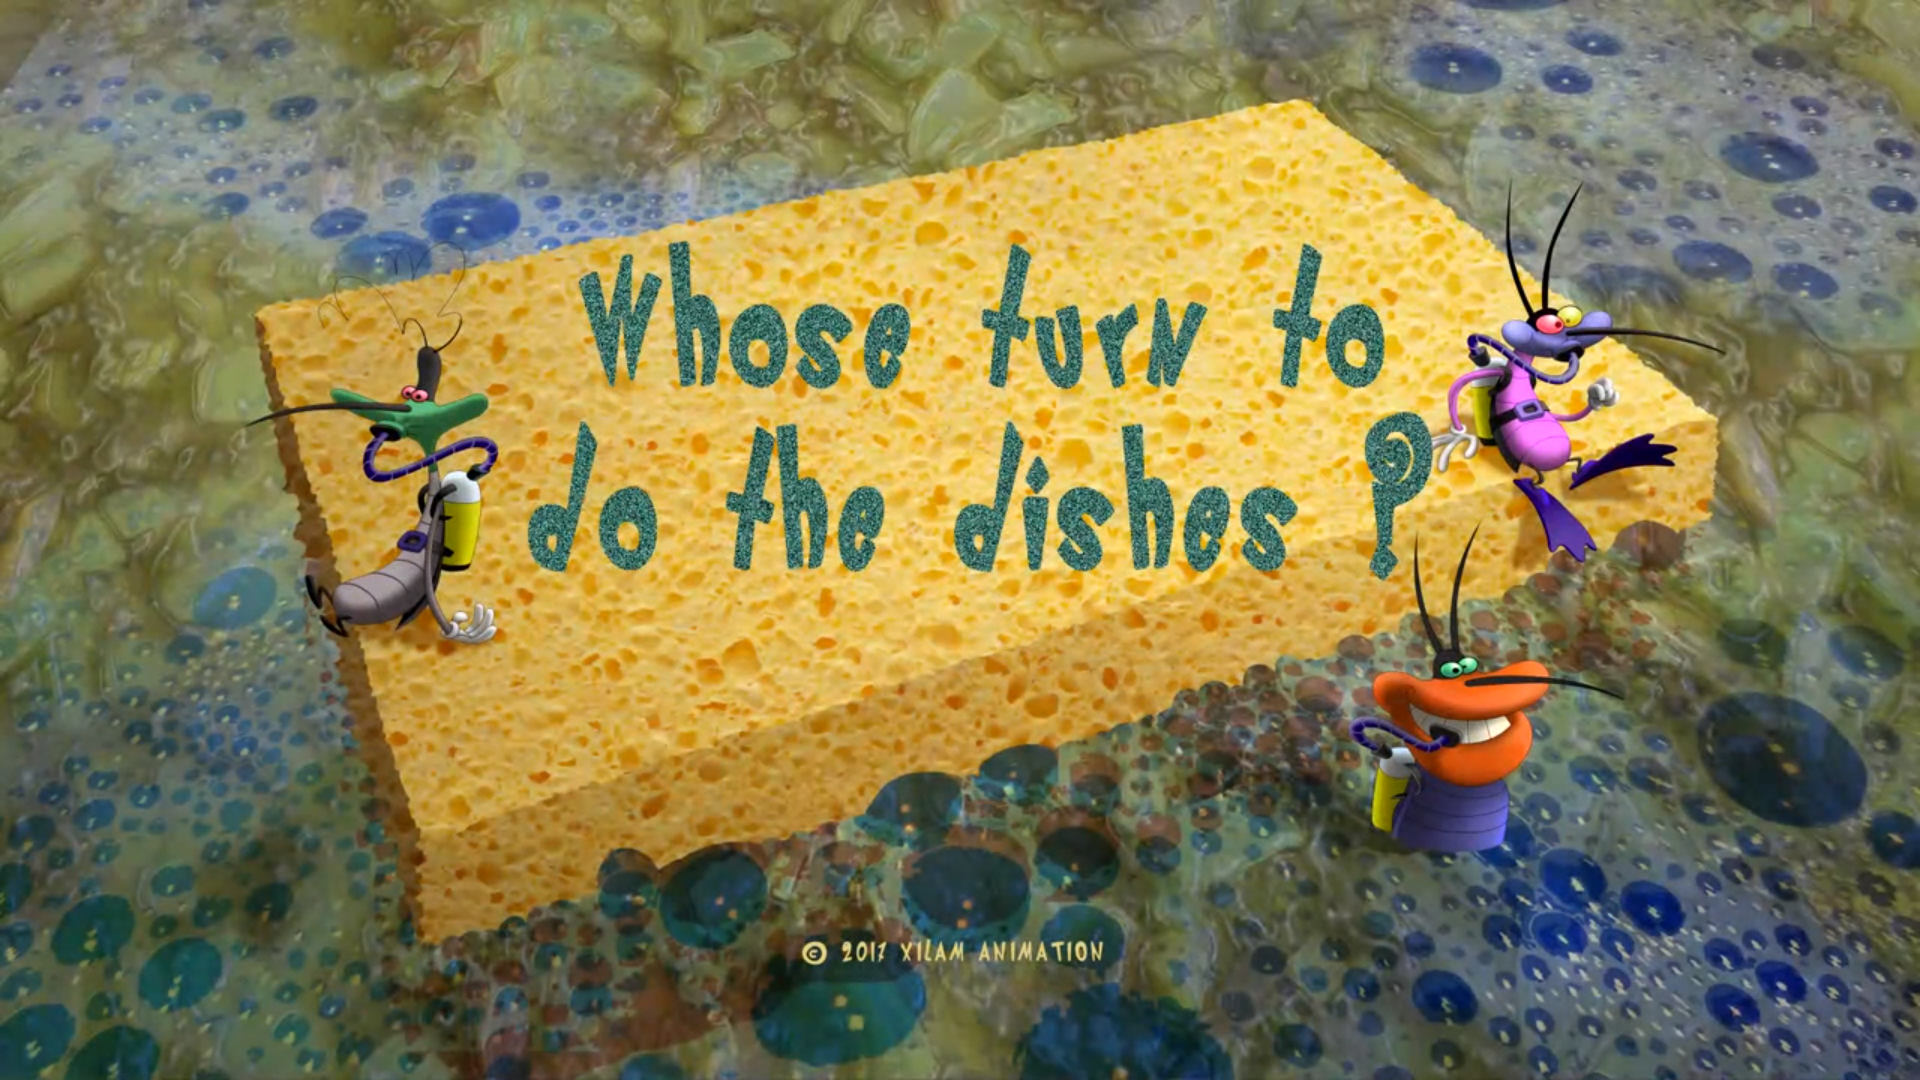 Whose Turn To Do The Dishes?